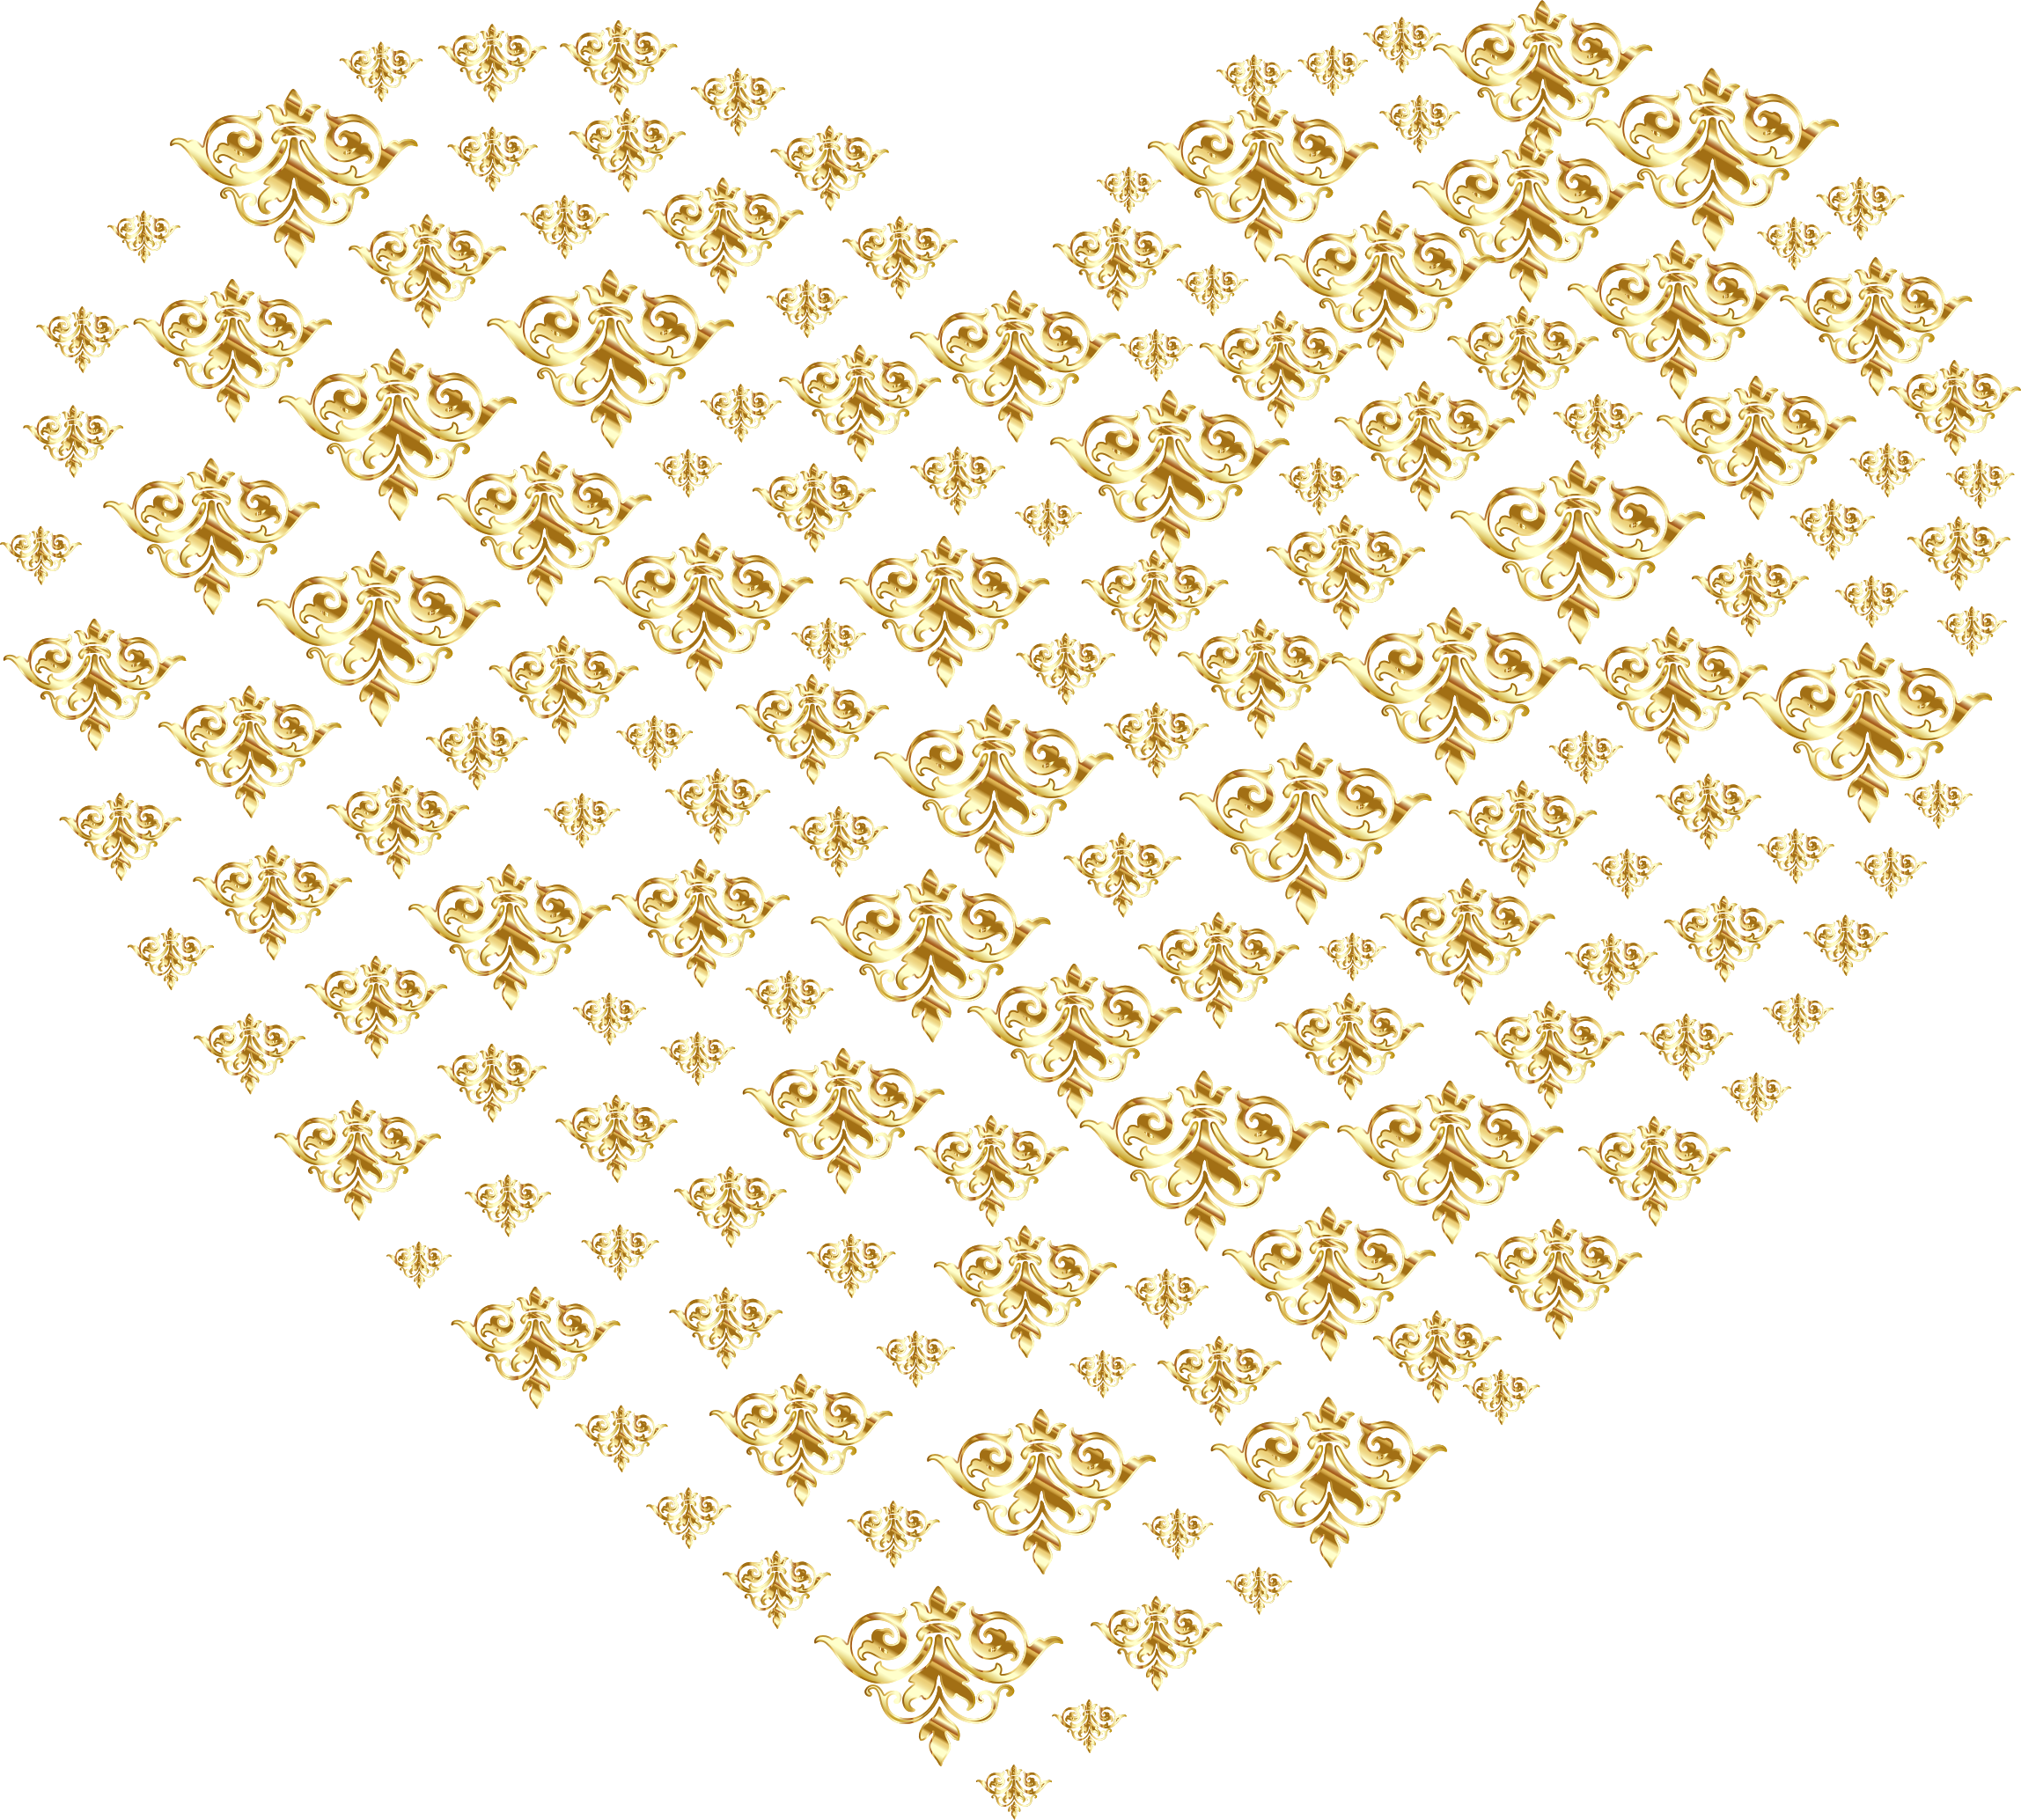 Gold heart clipart no background svg transparent Clipart - Gold Damask Heart No Background svg transparent